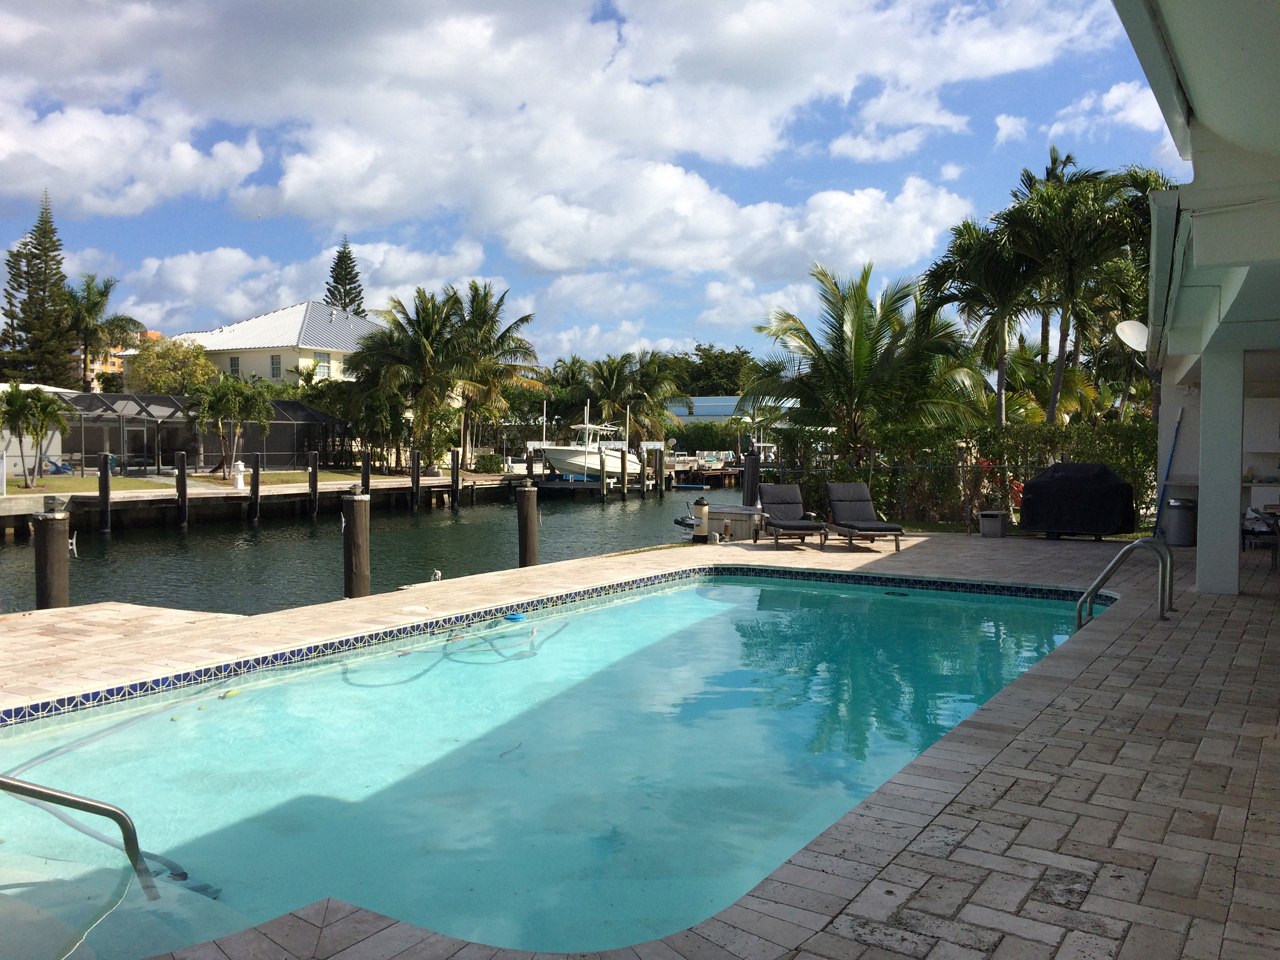 Keystone Point Home for sale with pool and 75' Dock